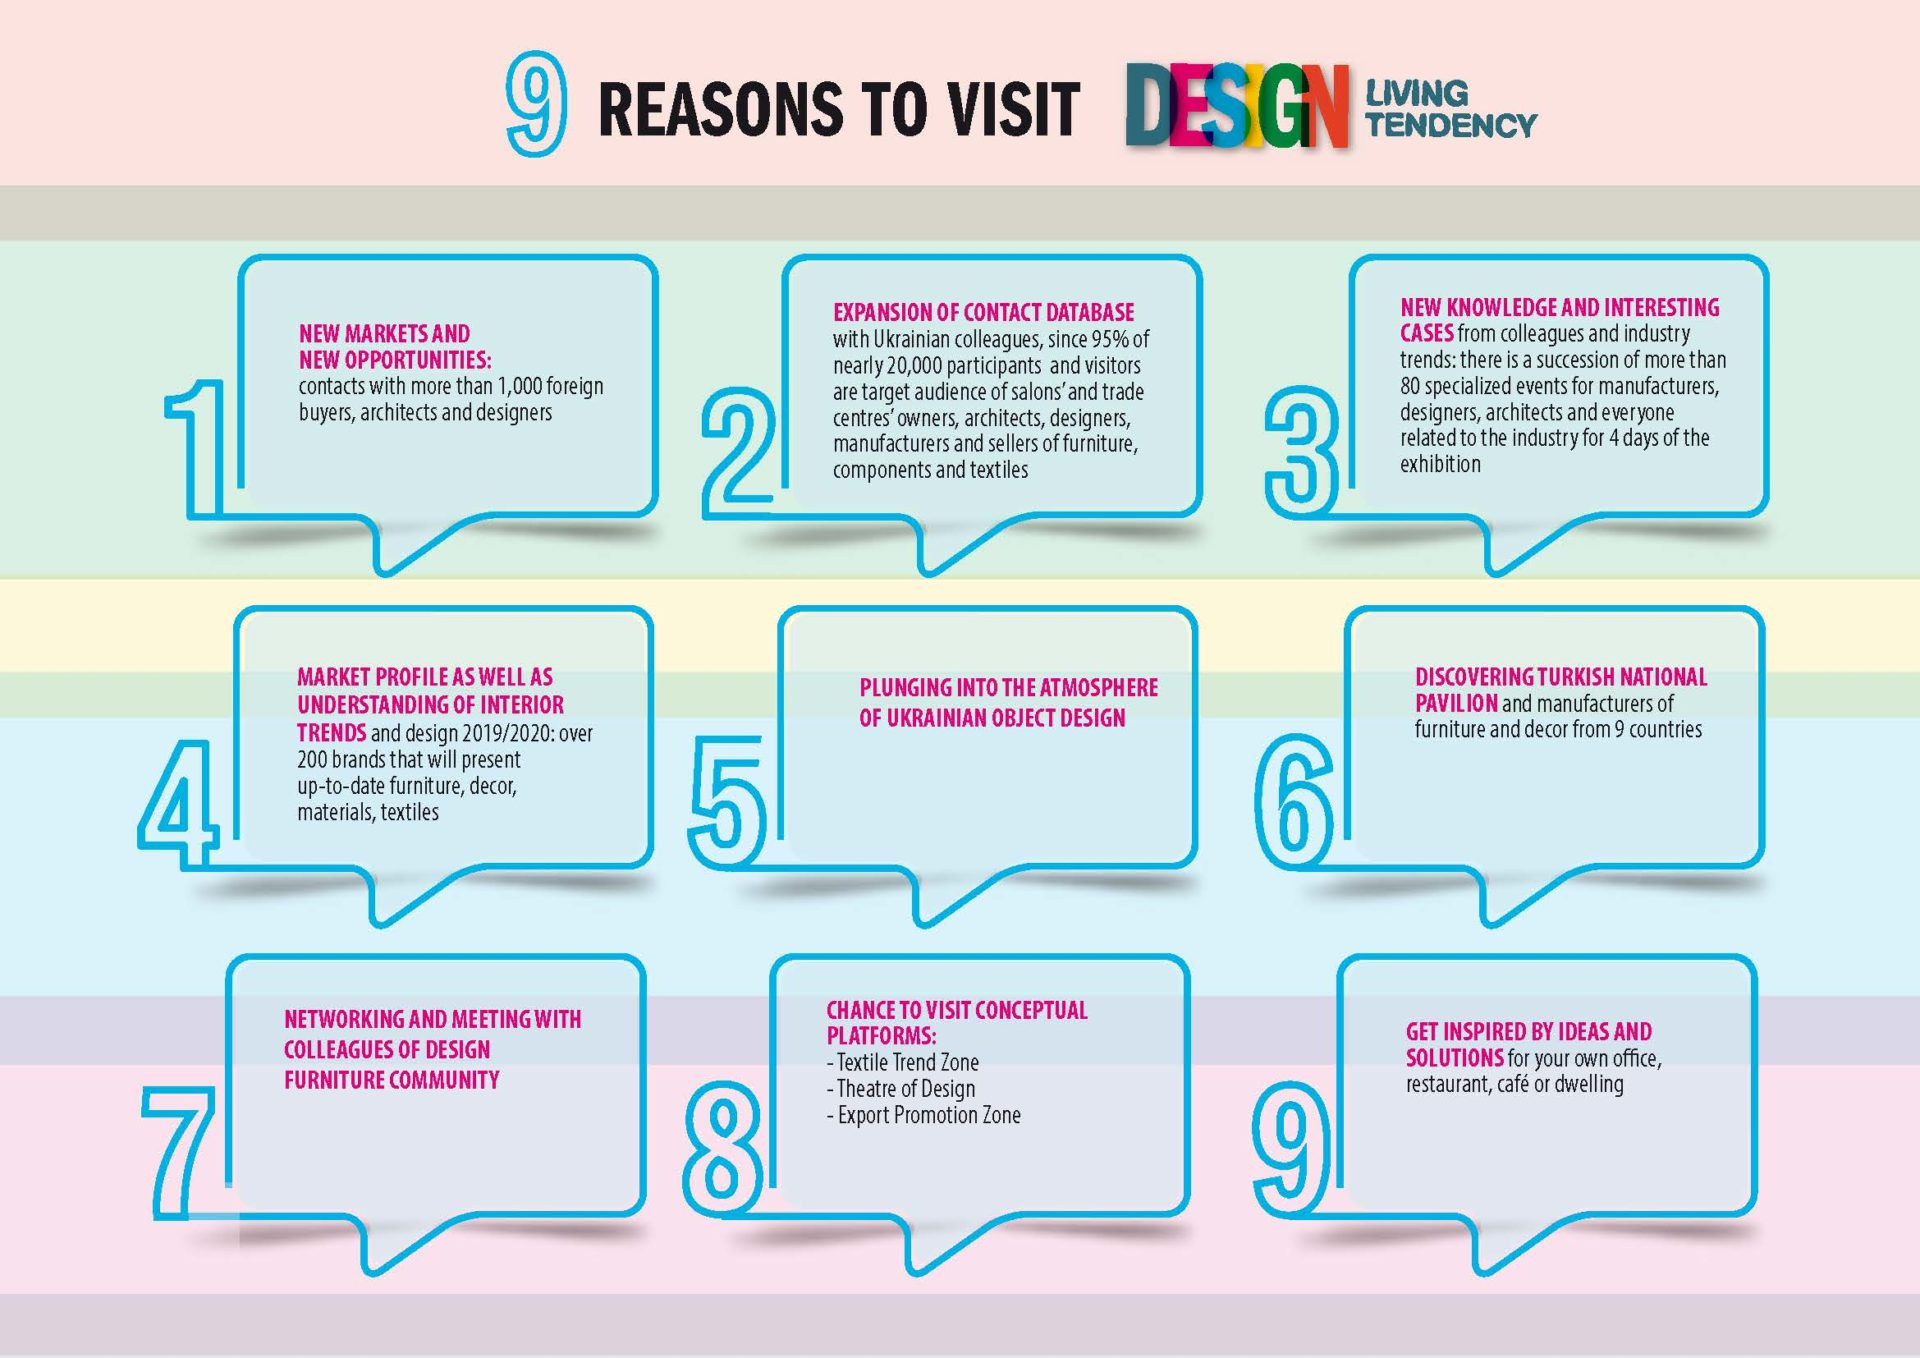 infografic engl 4 - Everything you need to know about Design Living Tendency 2019